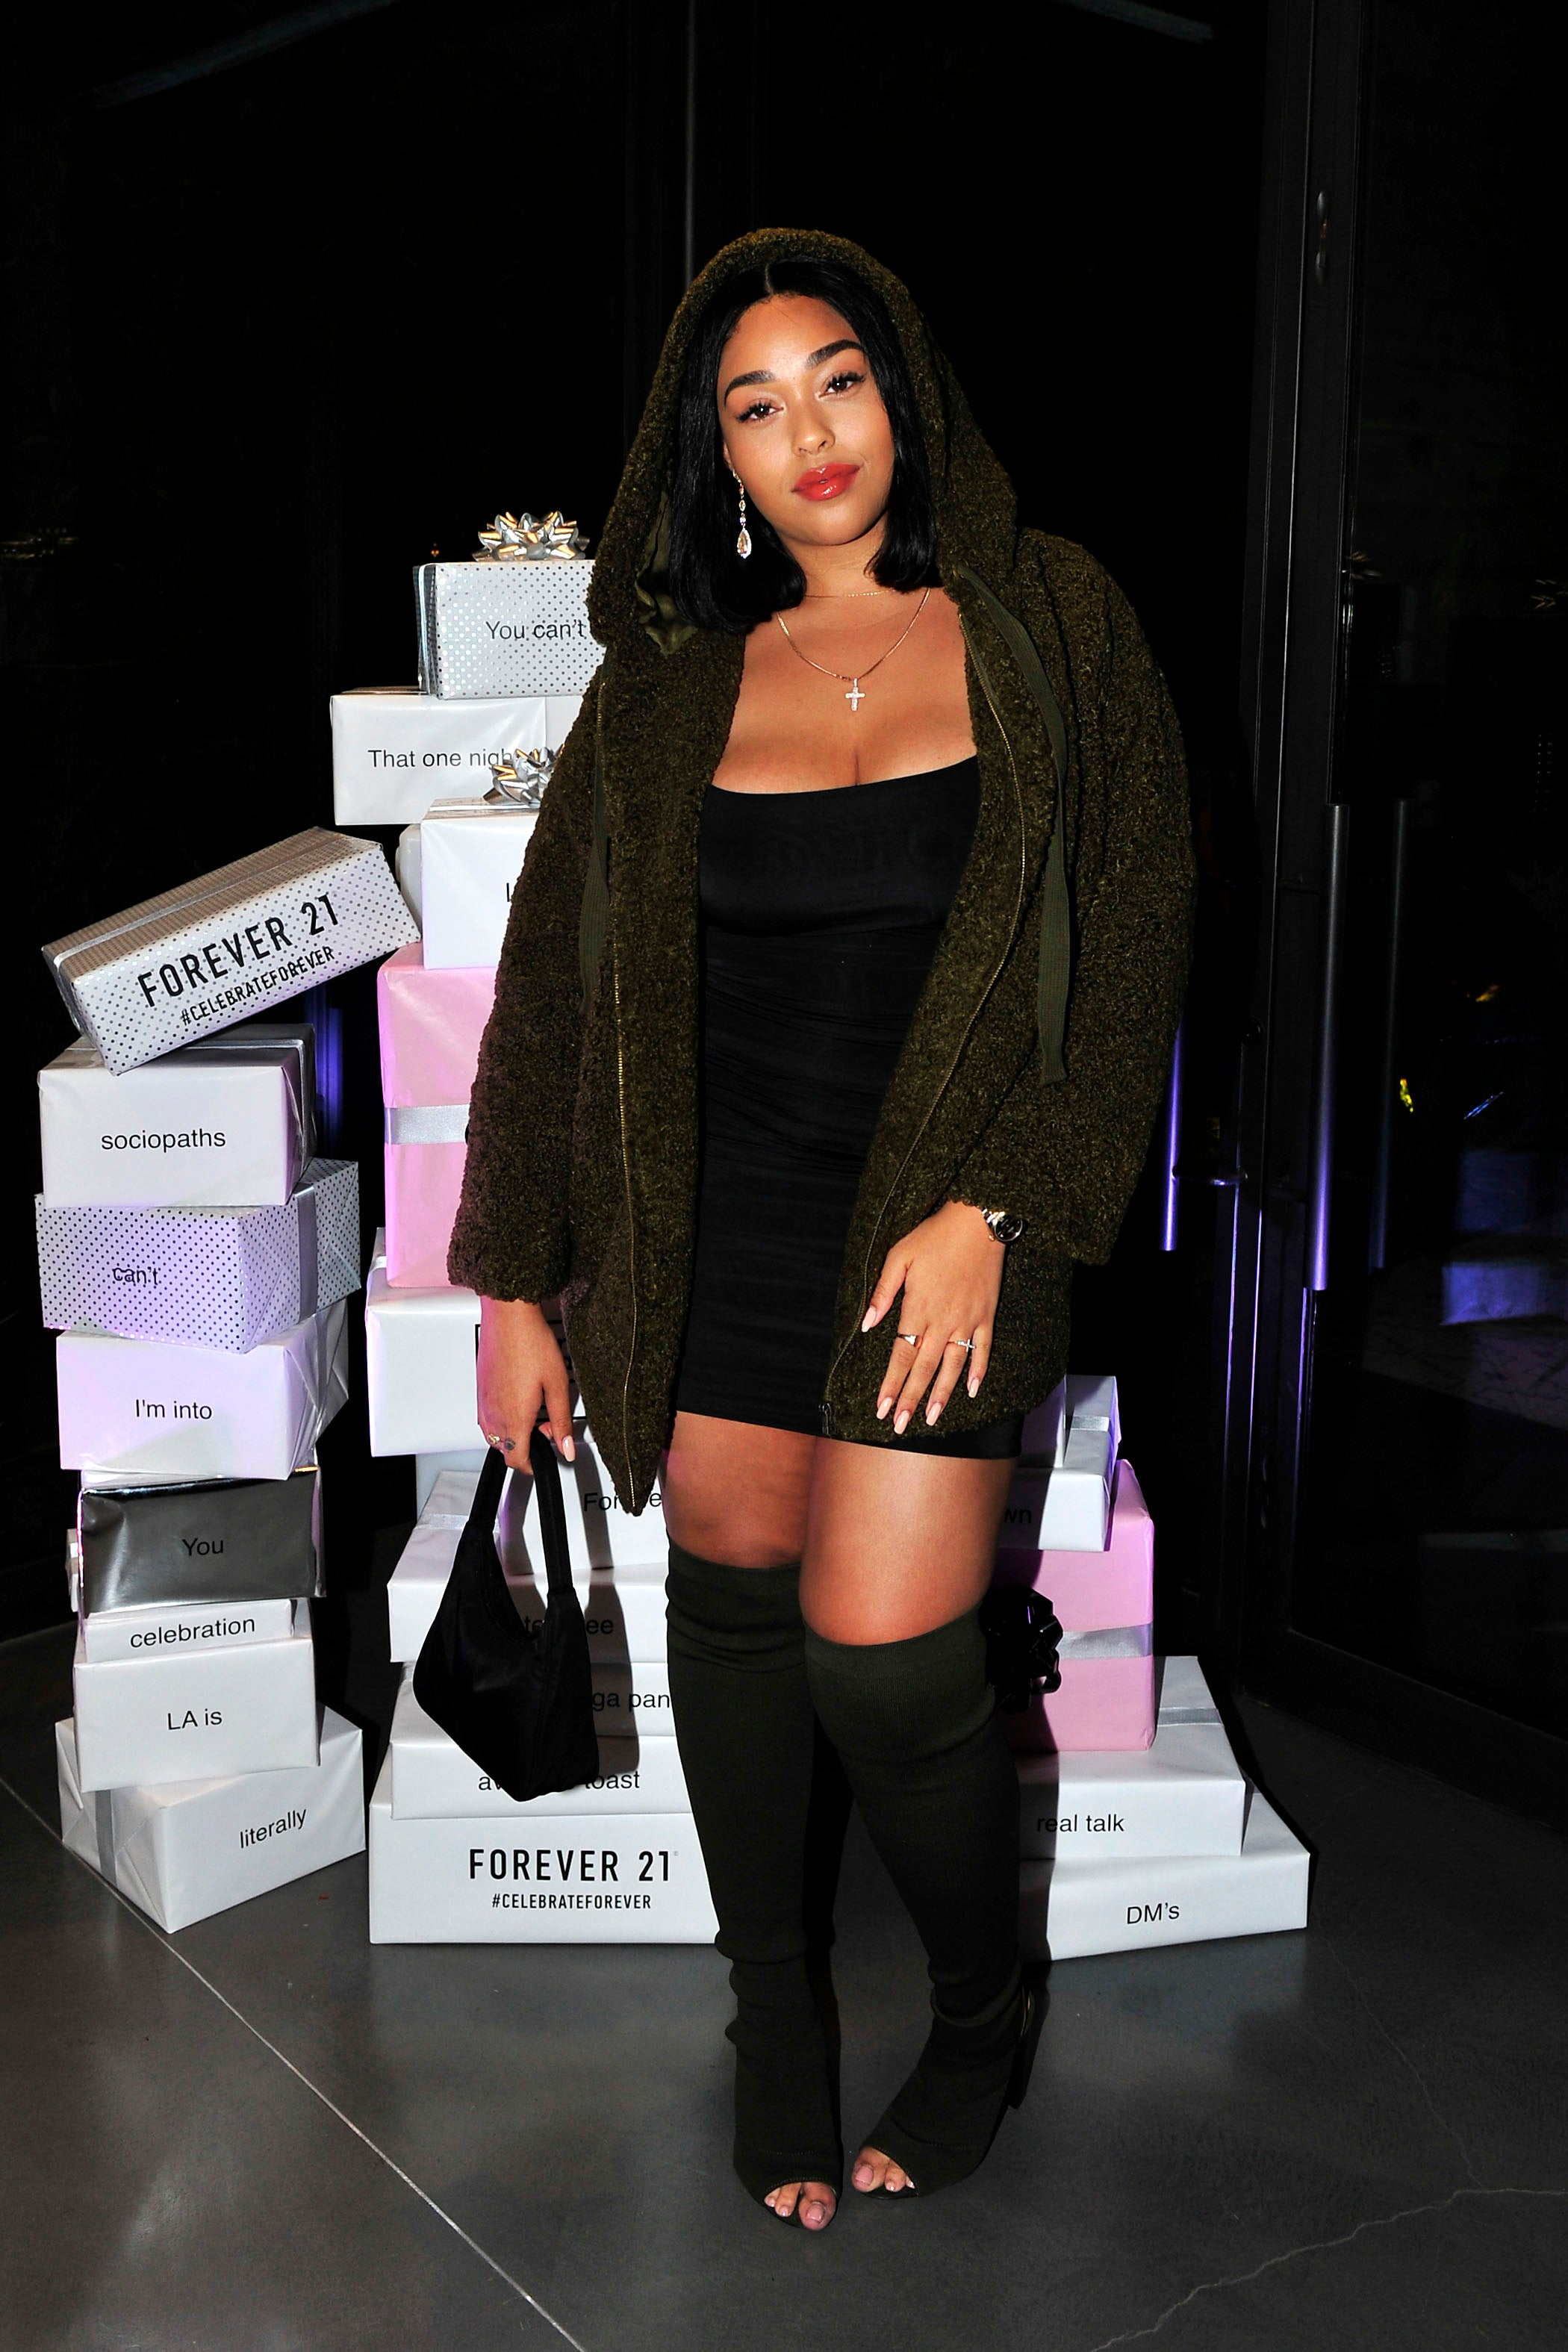 Jordyn Woods at Forever21 event